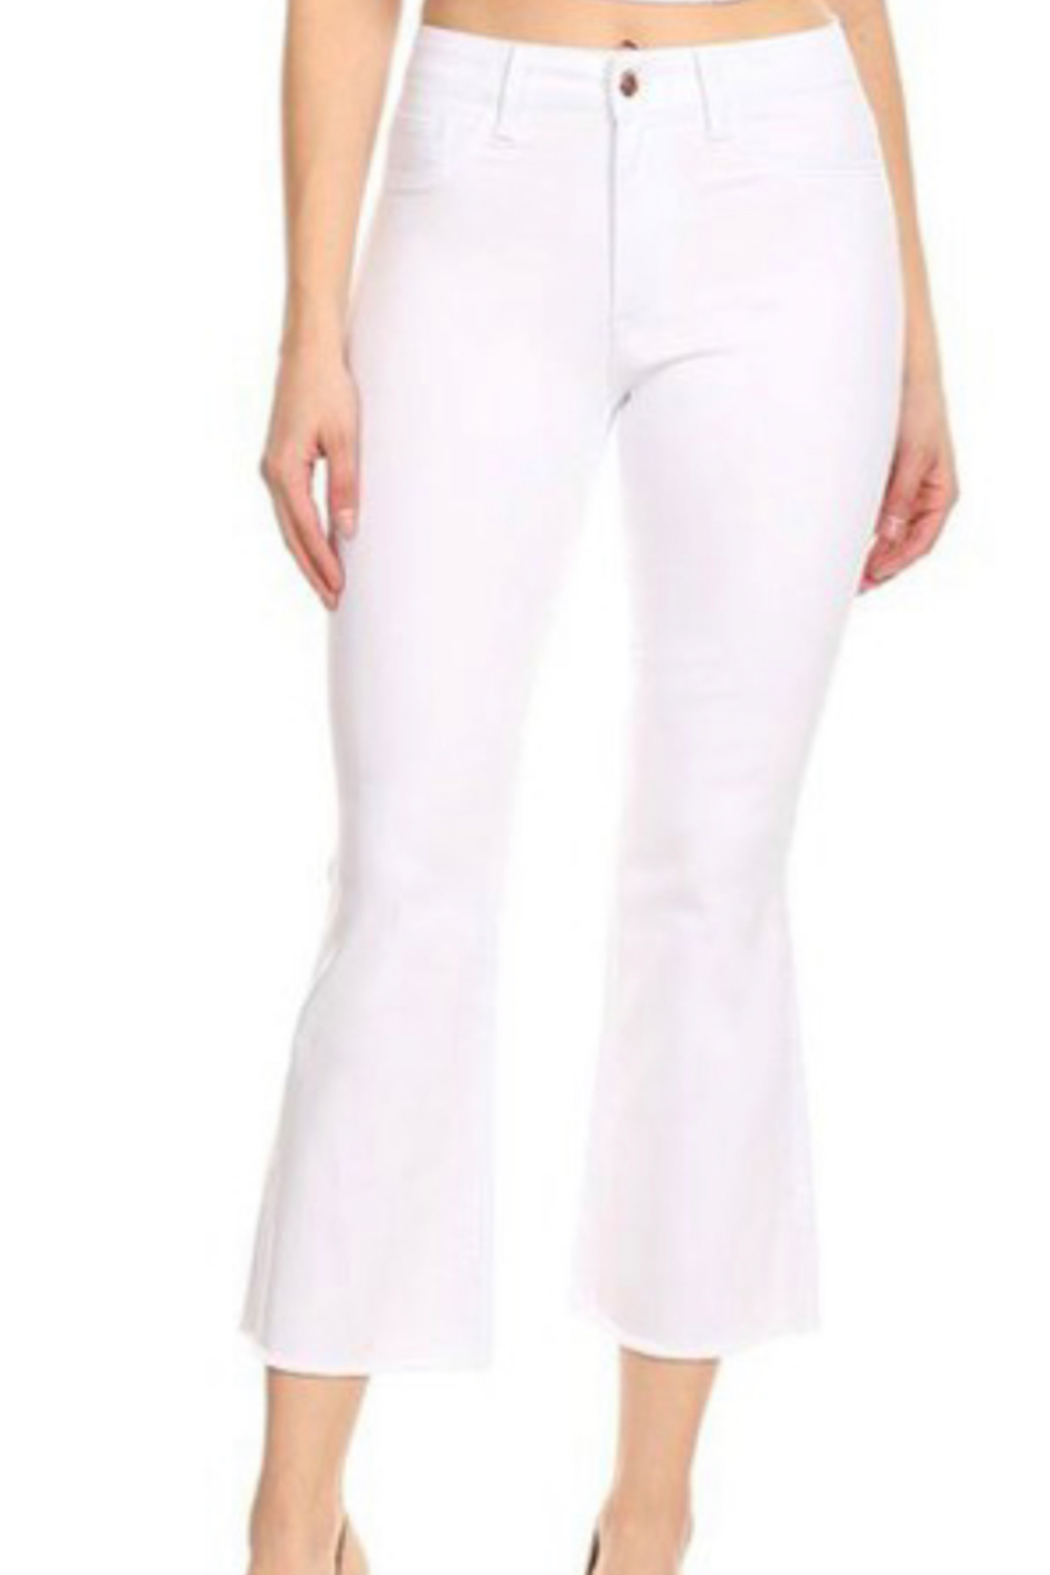 Hammer Jeans White Crop Flare jeans - Main Image